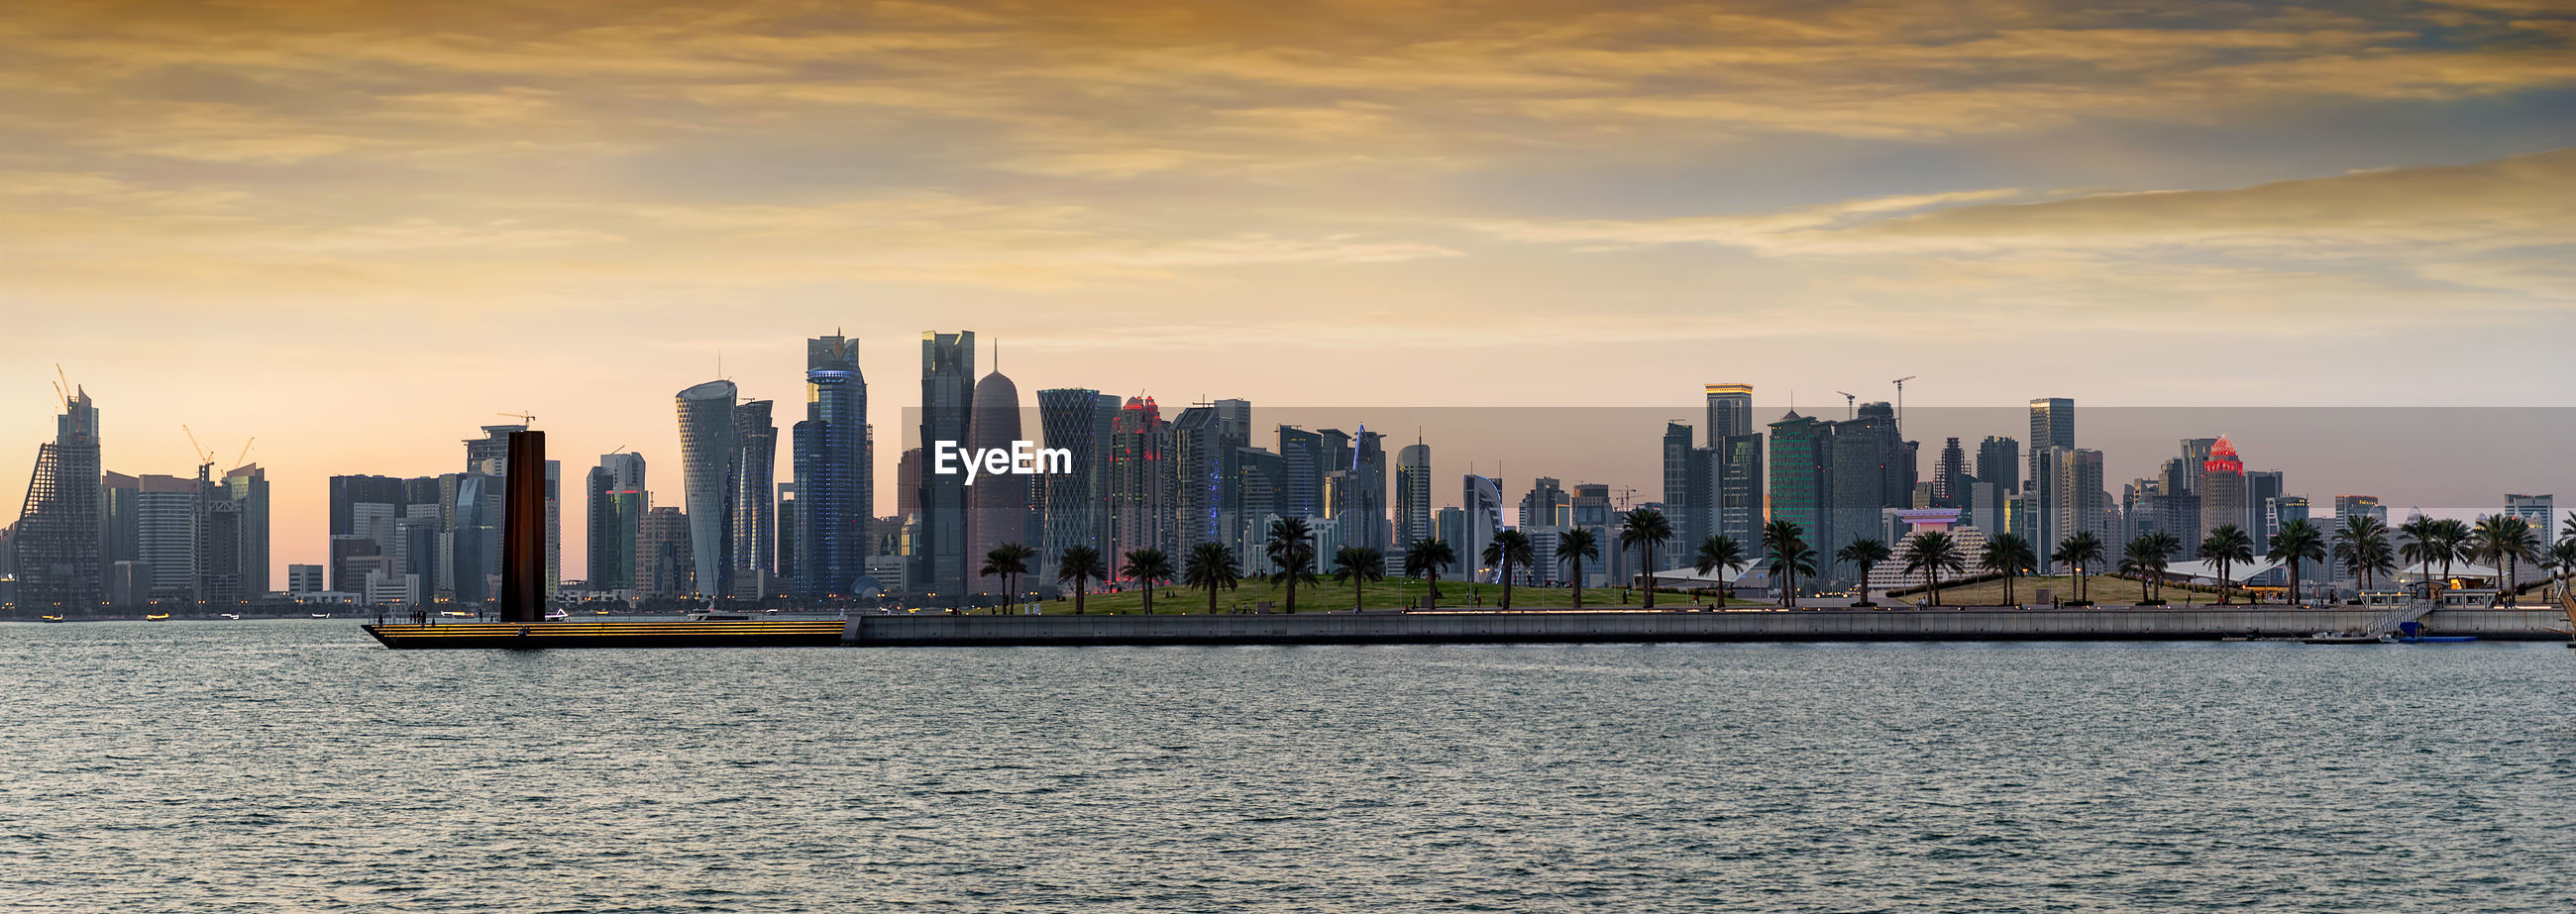 Panoramic view of buildings and sea in city during sunset